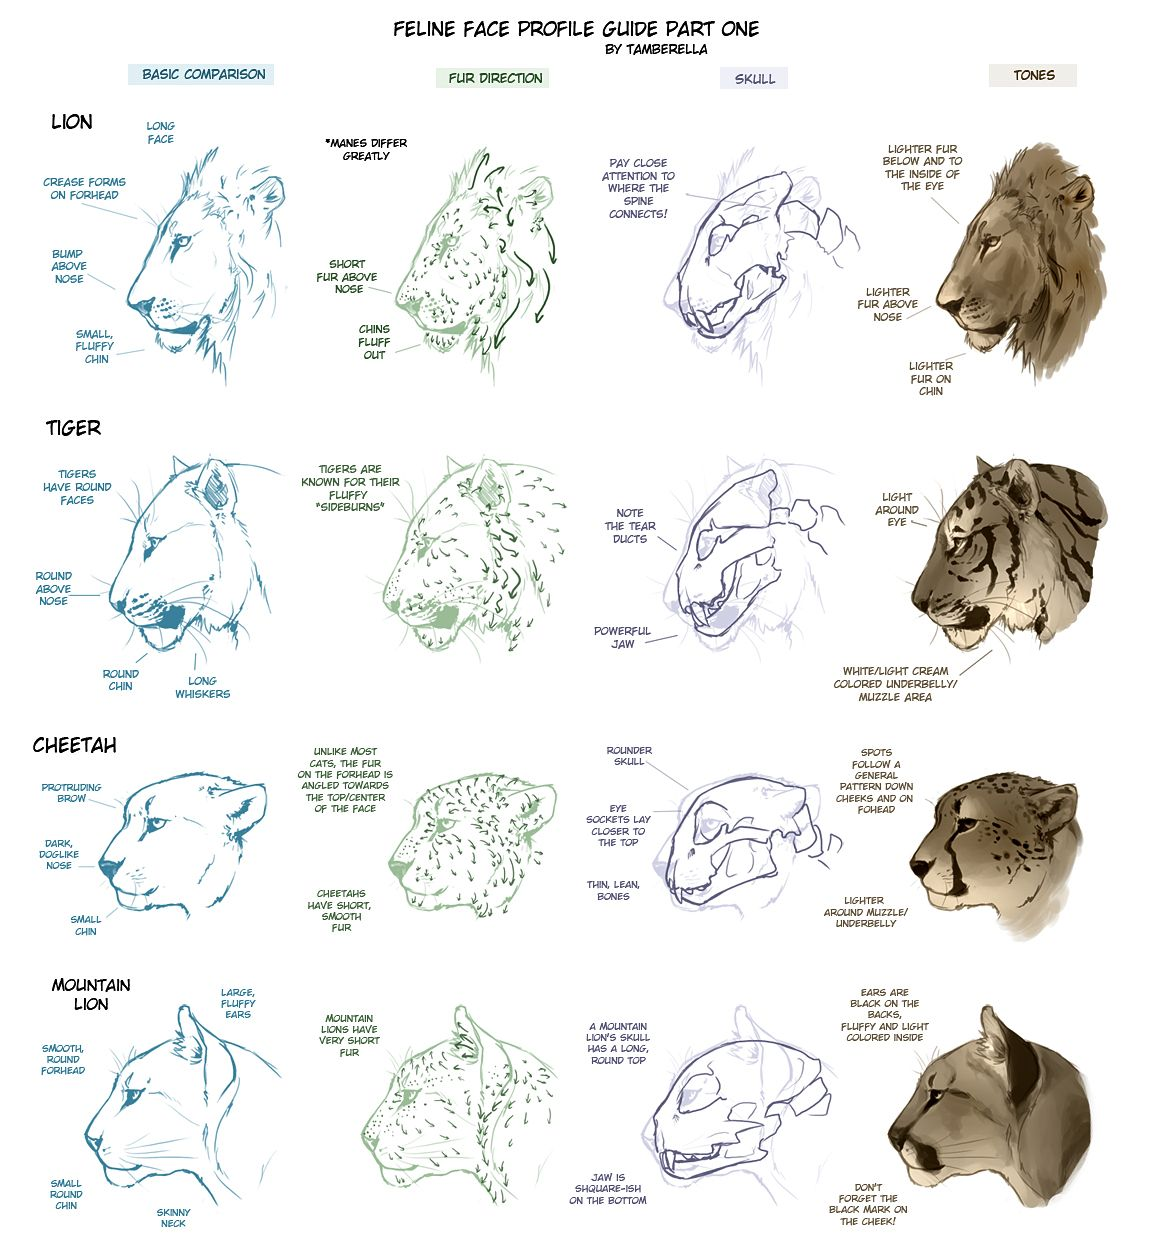 Feline Face Profile Tutorial 1 by *TamberElla on deviantART | Animal ...